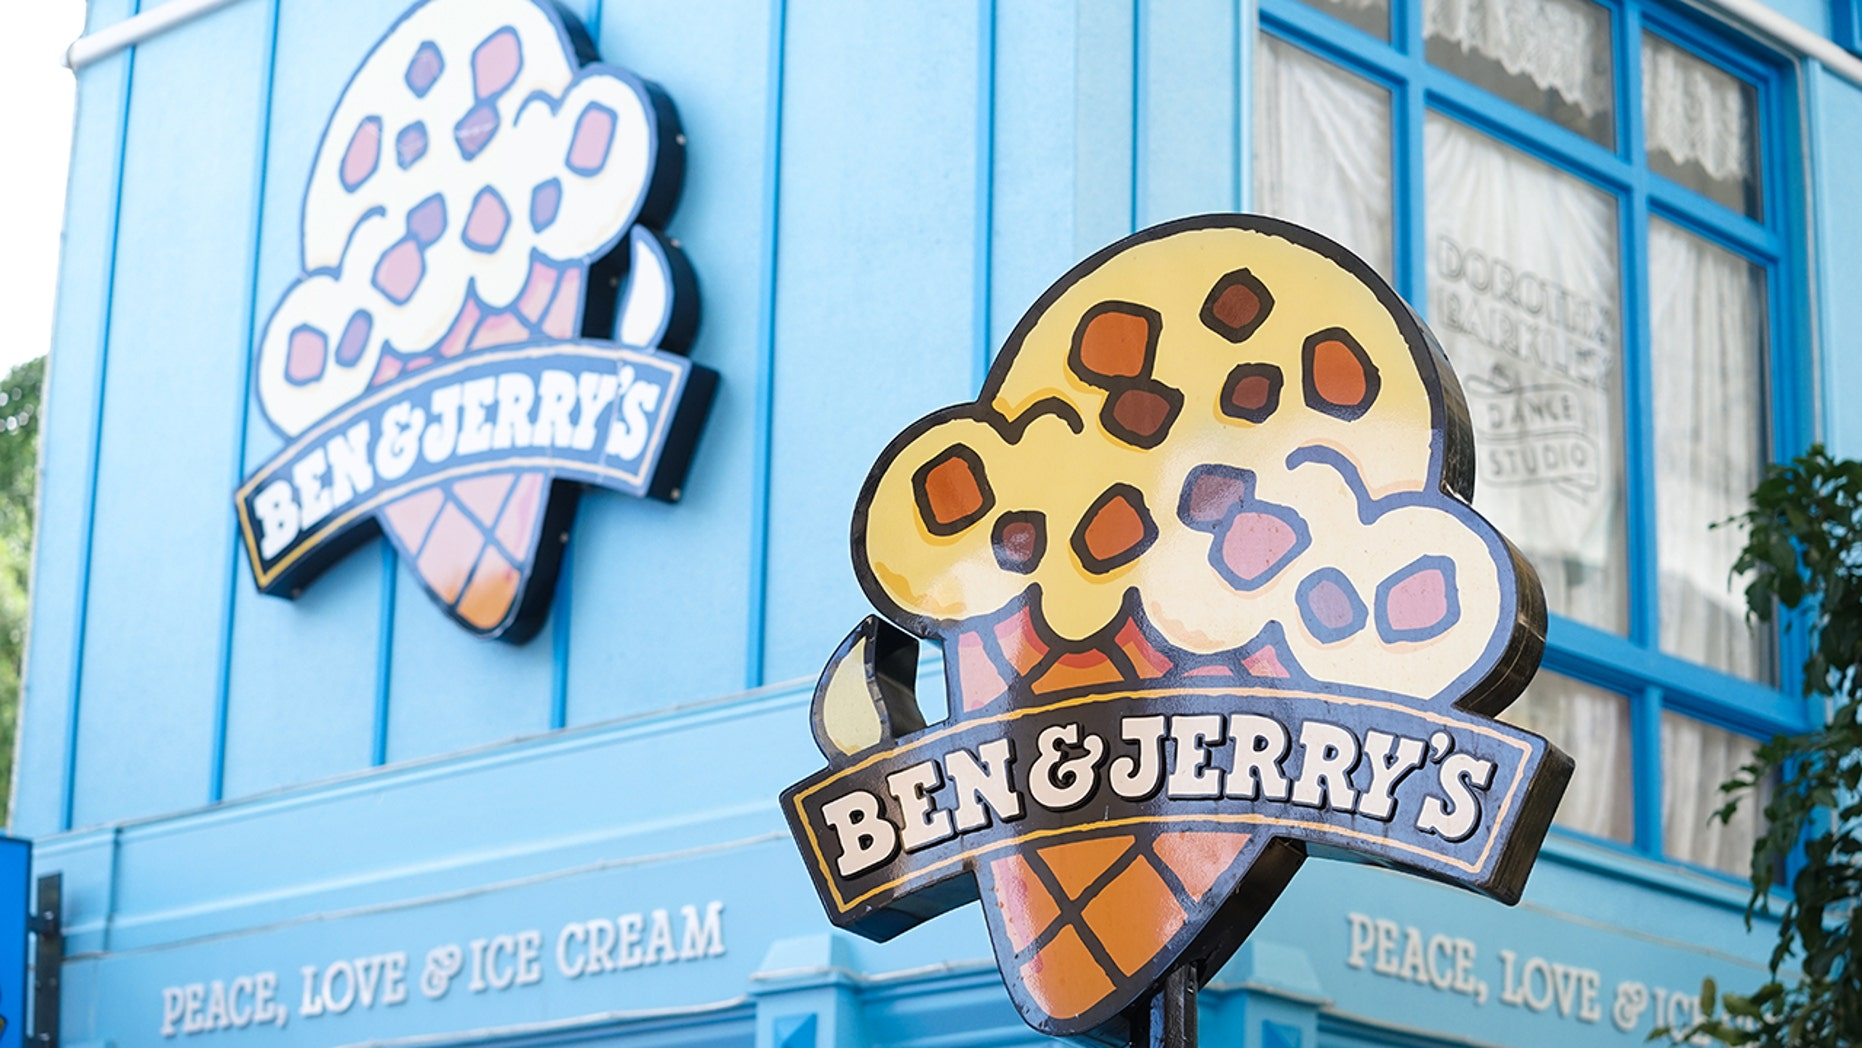 Ben amp; Jerry's ice cream emporium in Movie World's Gold Coast. Ben amp; Jerry's has combined a petition to obliterate before pot convictions